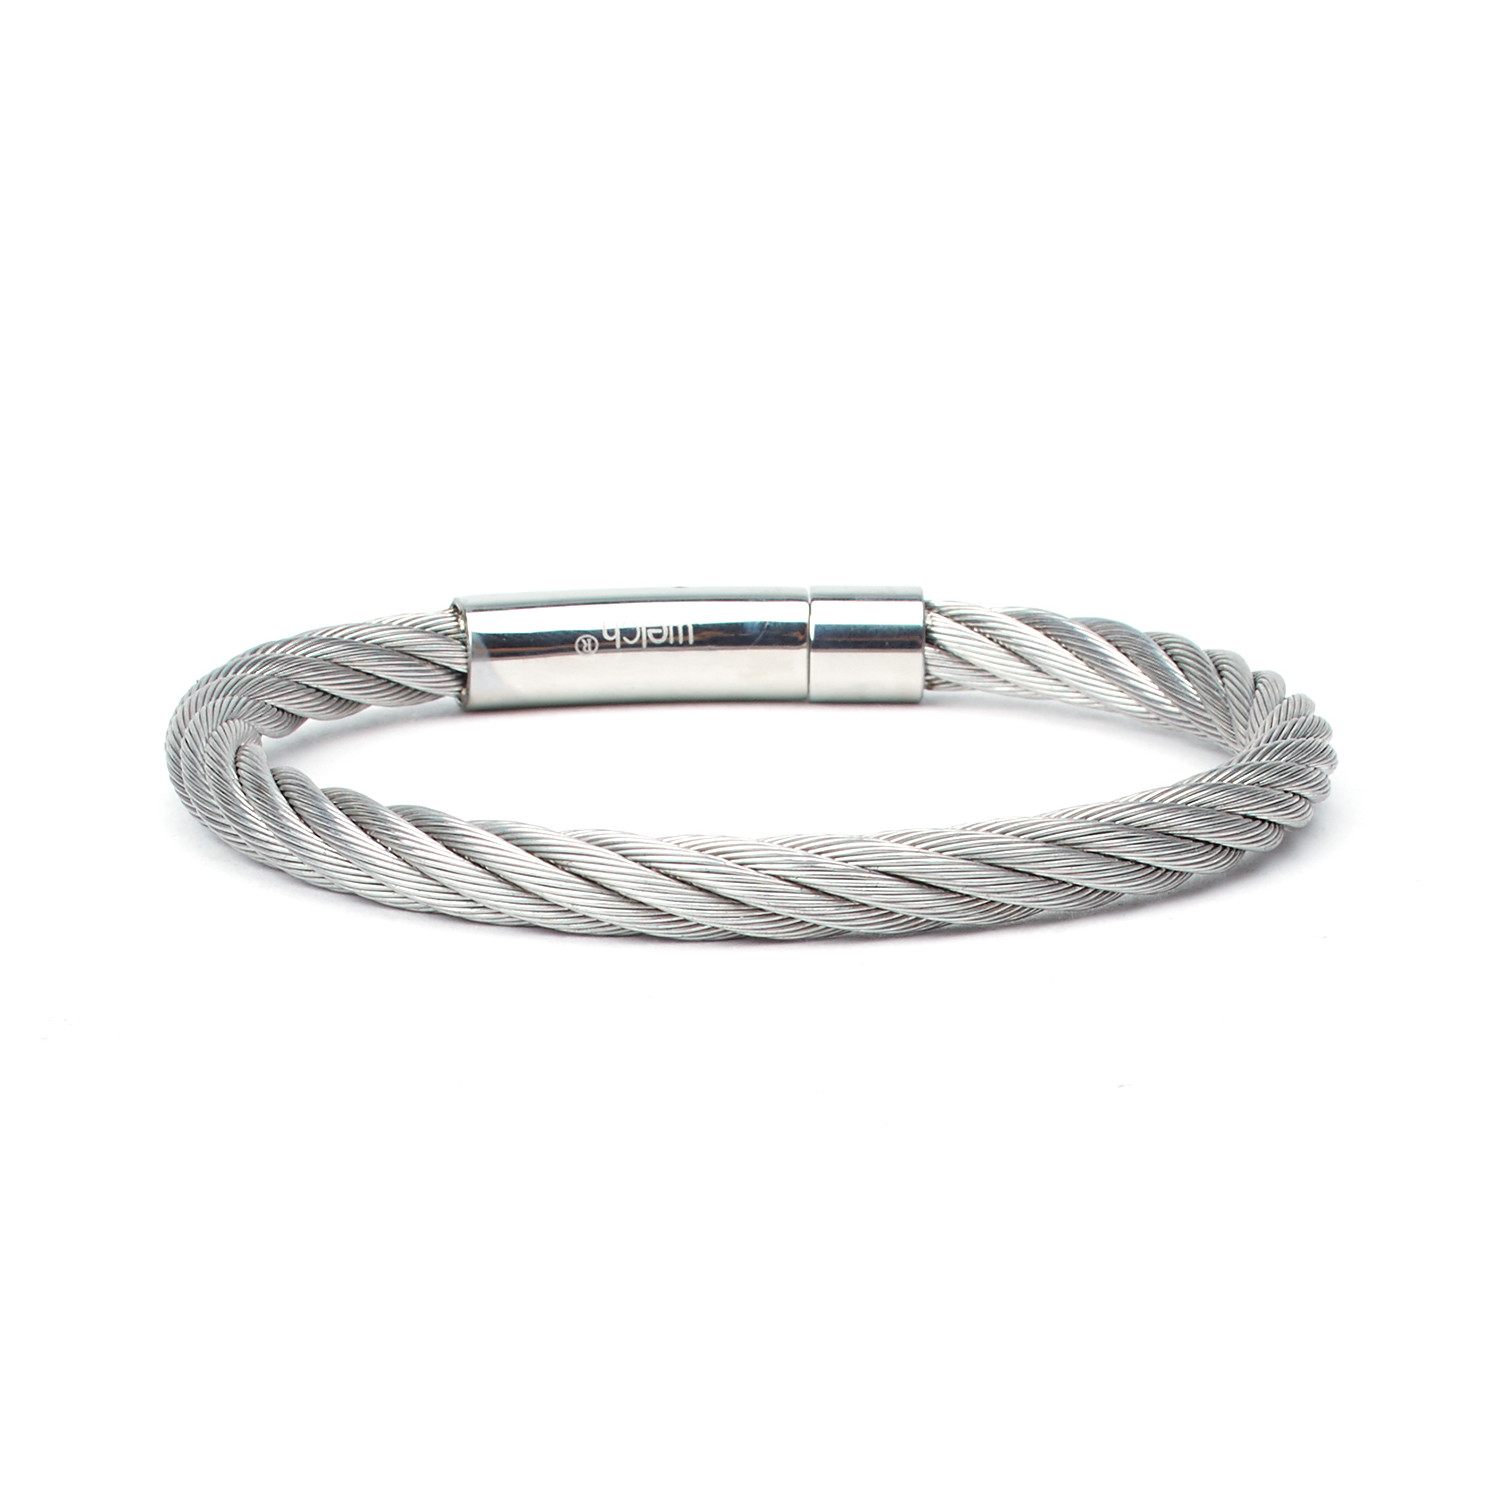 Tokat Stainless Steel Cable Bracelet